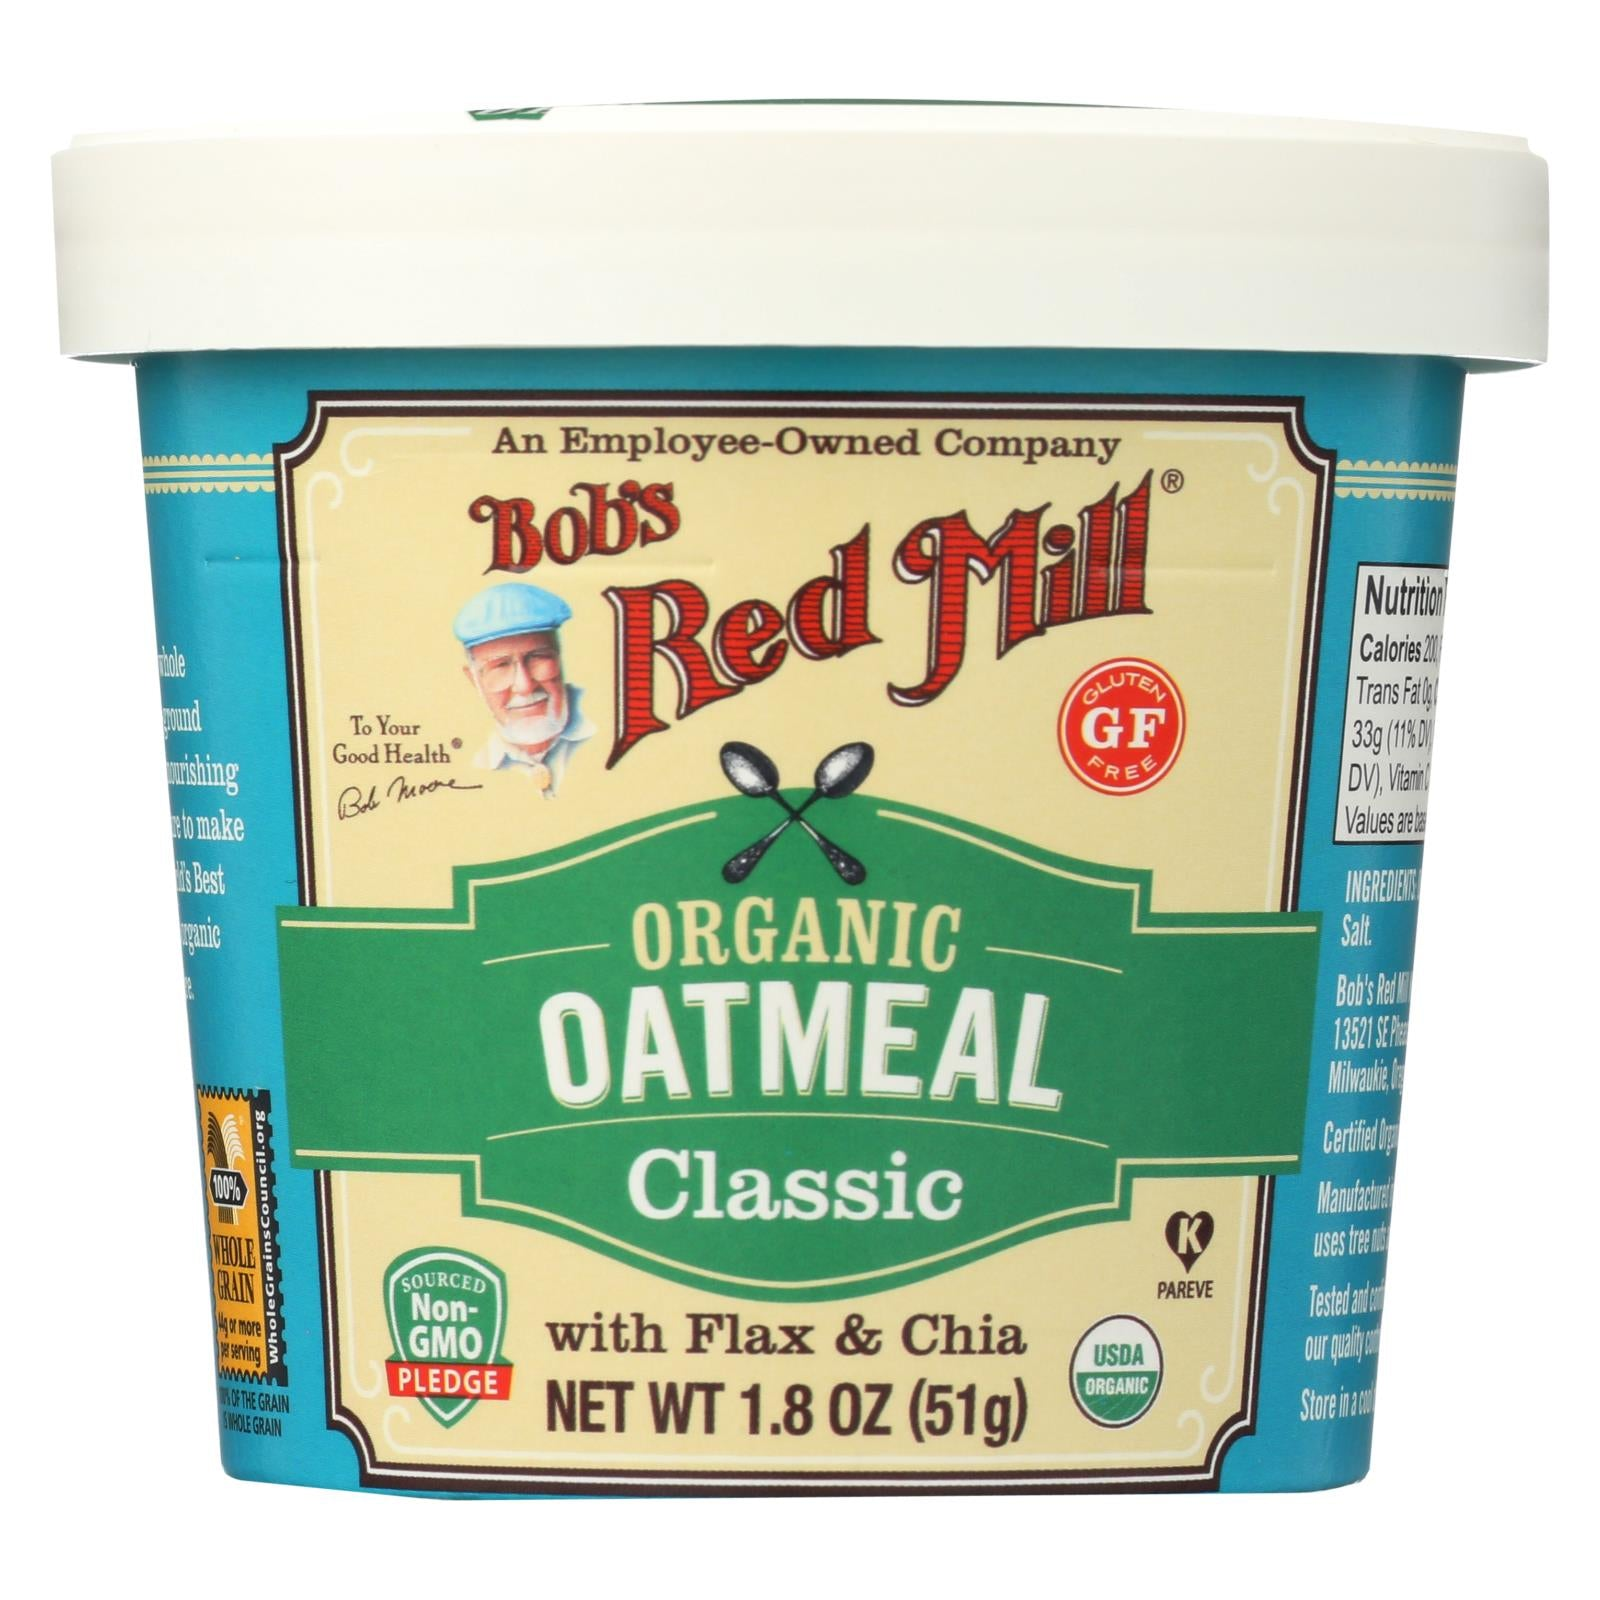 Bob's Red Mill Oatmeal - Organic - Cup - Classc - Gluten Free - Case Of 12 - 1.8 Oz HG2188241